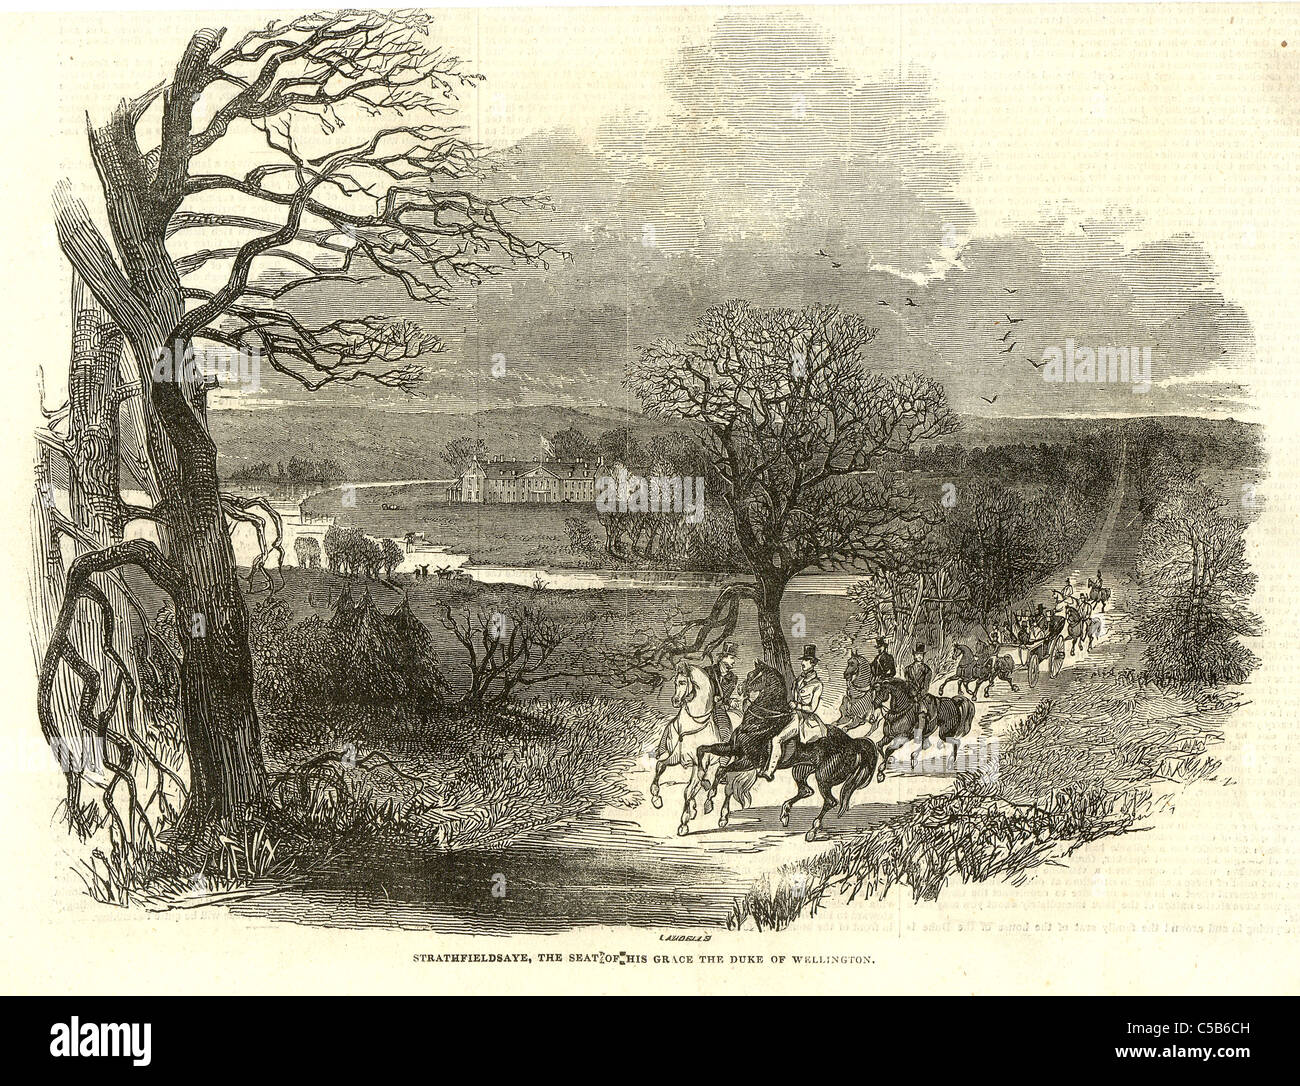 Strathfieldsaye, the seat of the Duke of Wellington - Stock Image